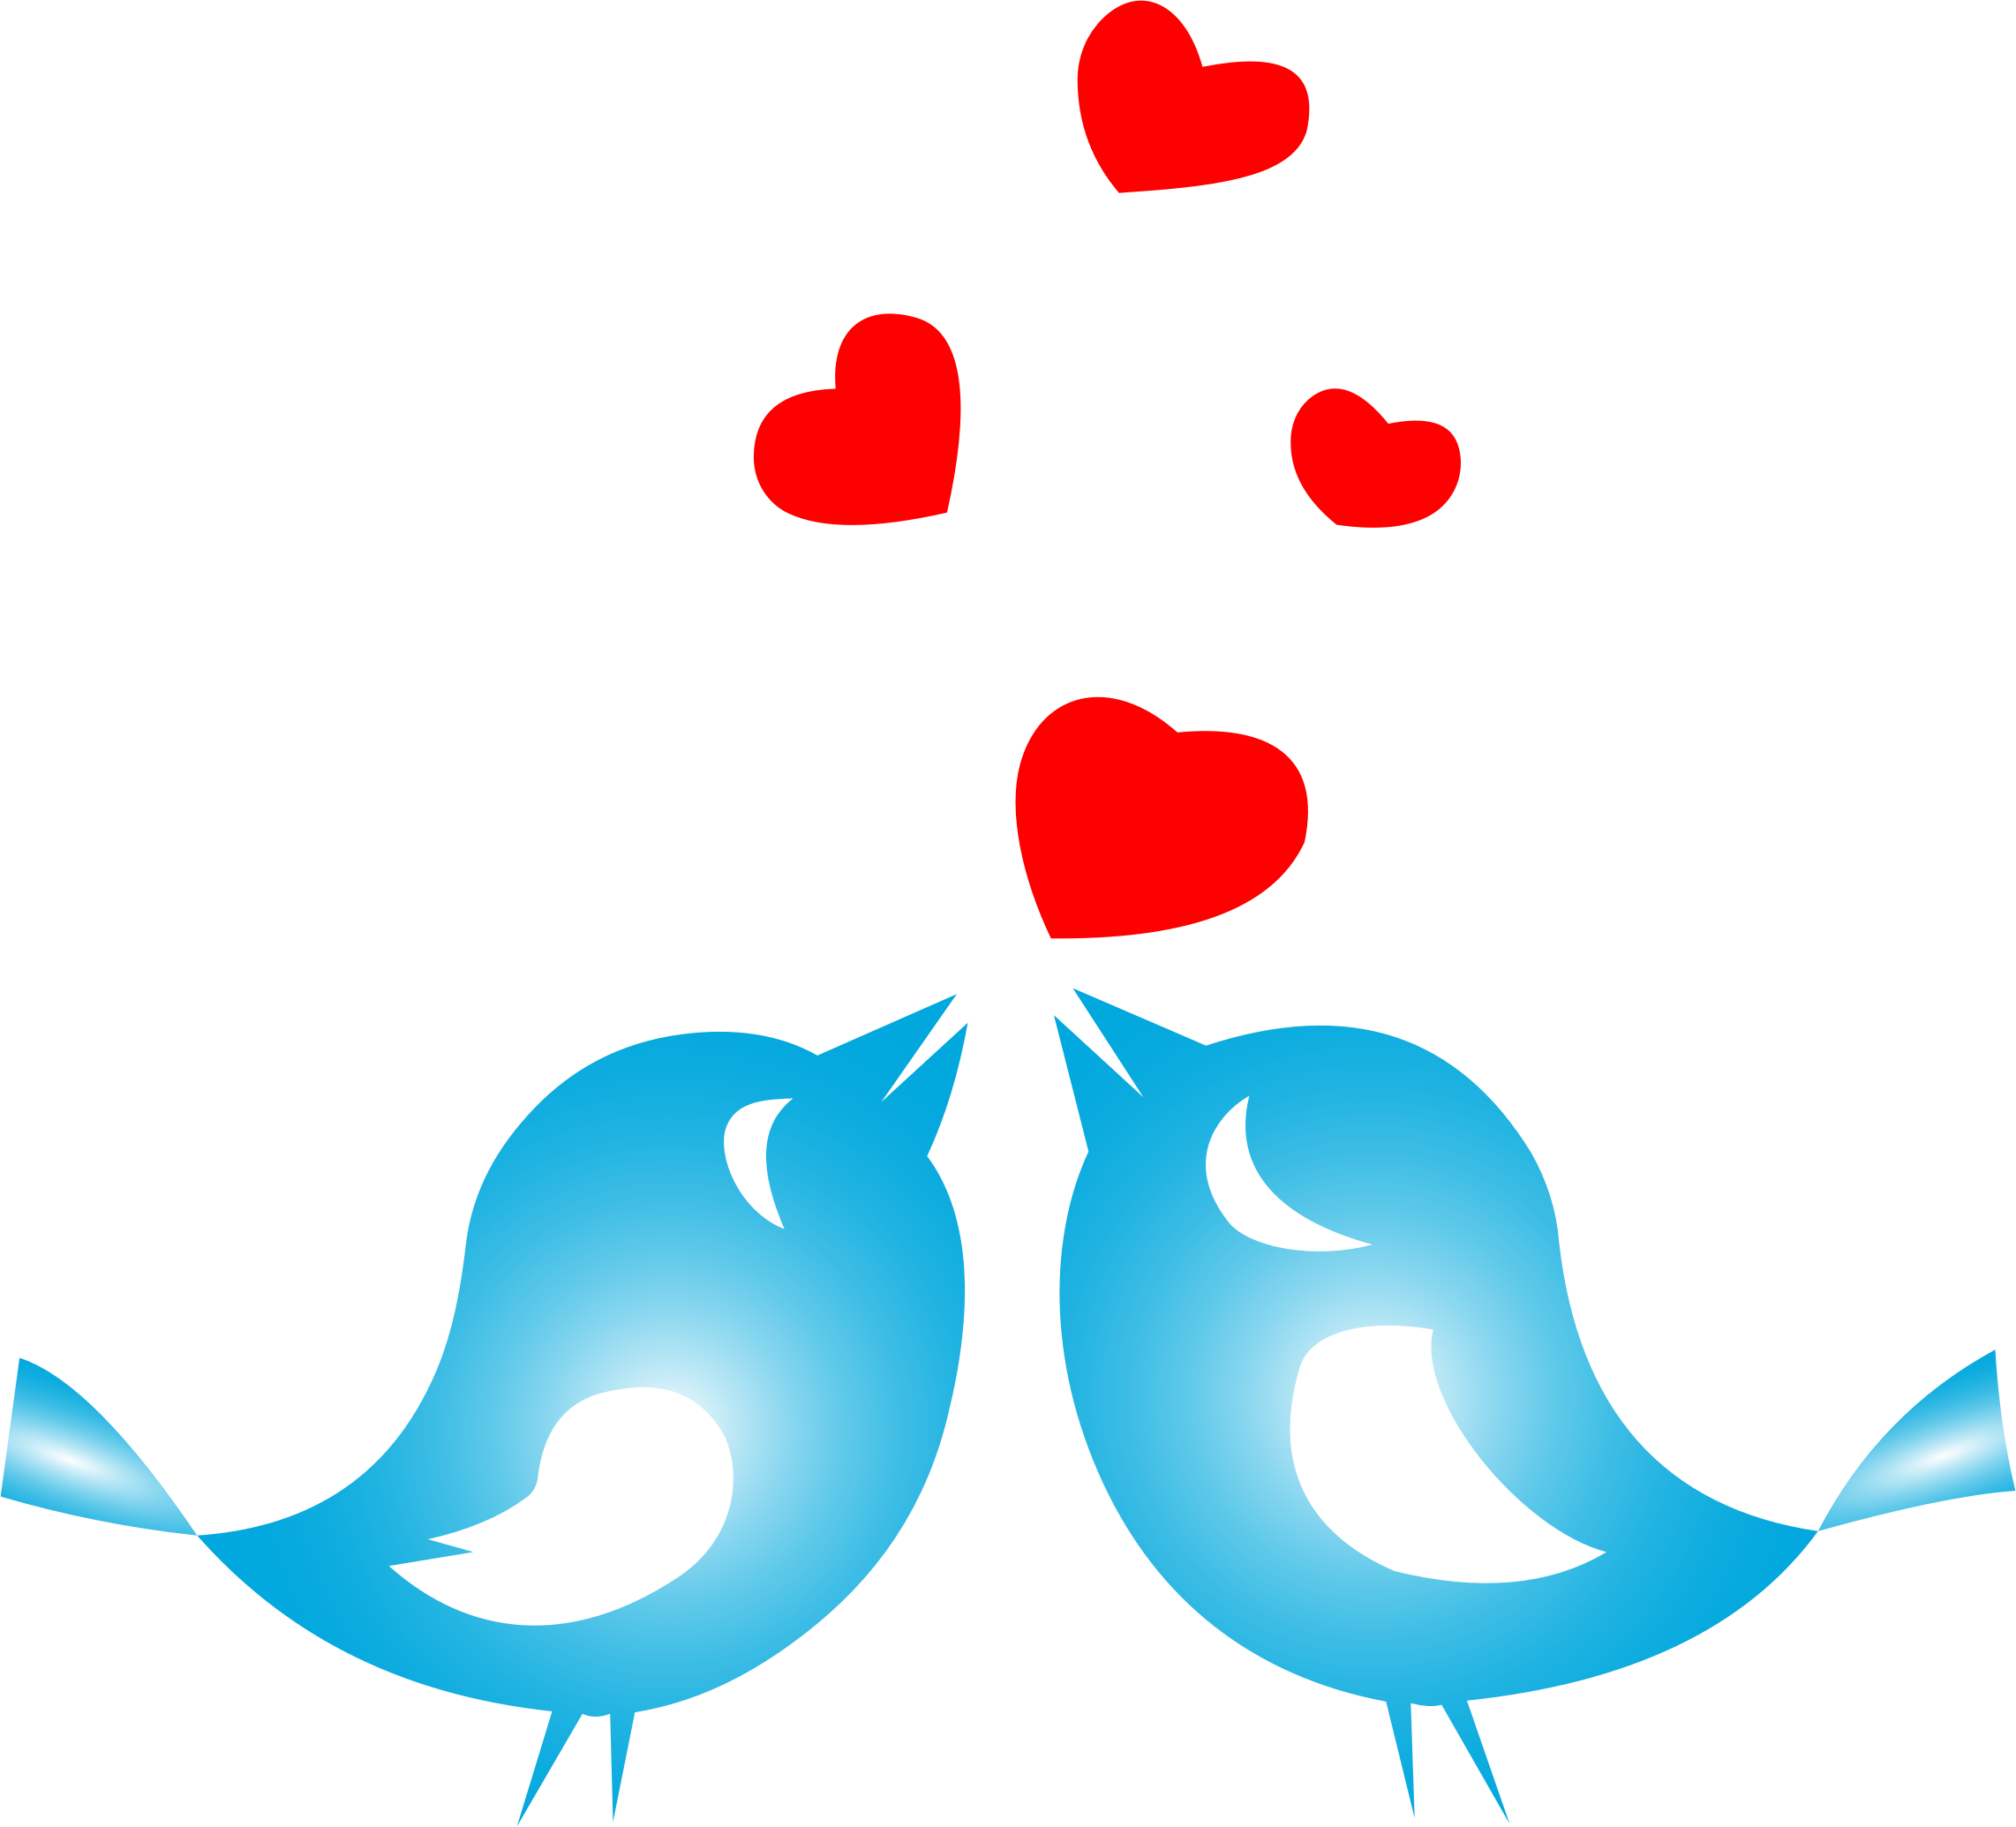 Clipart - Colored Love Birds With Hearts